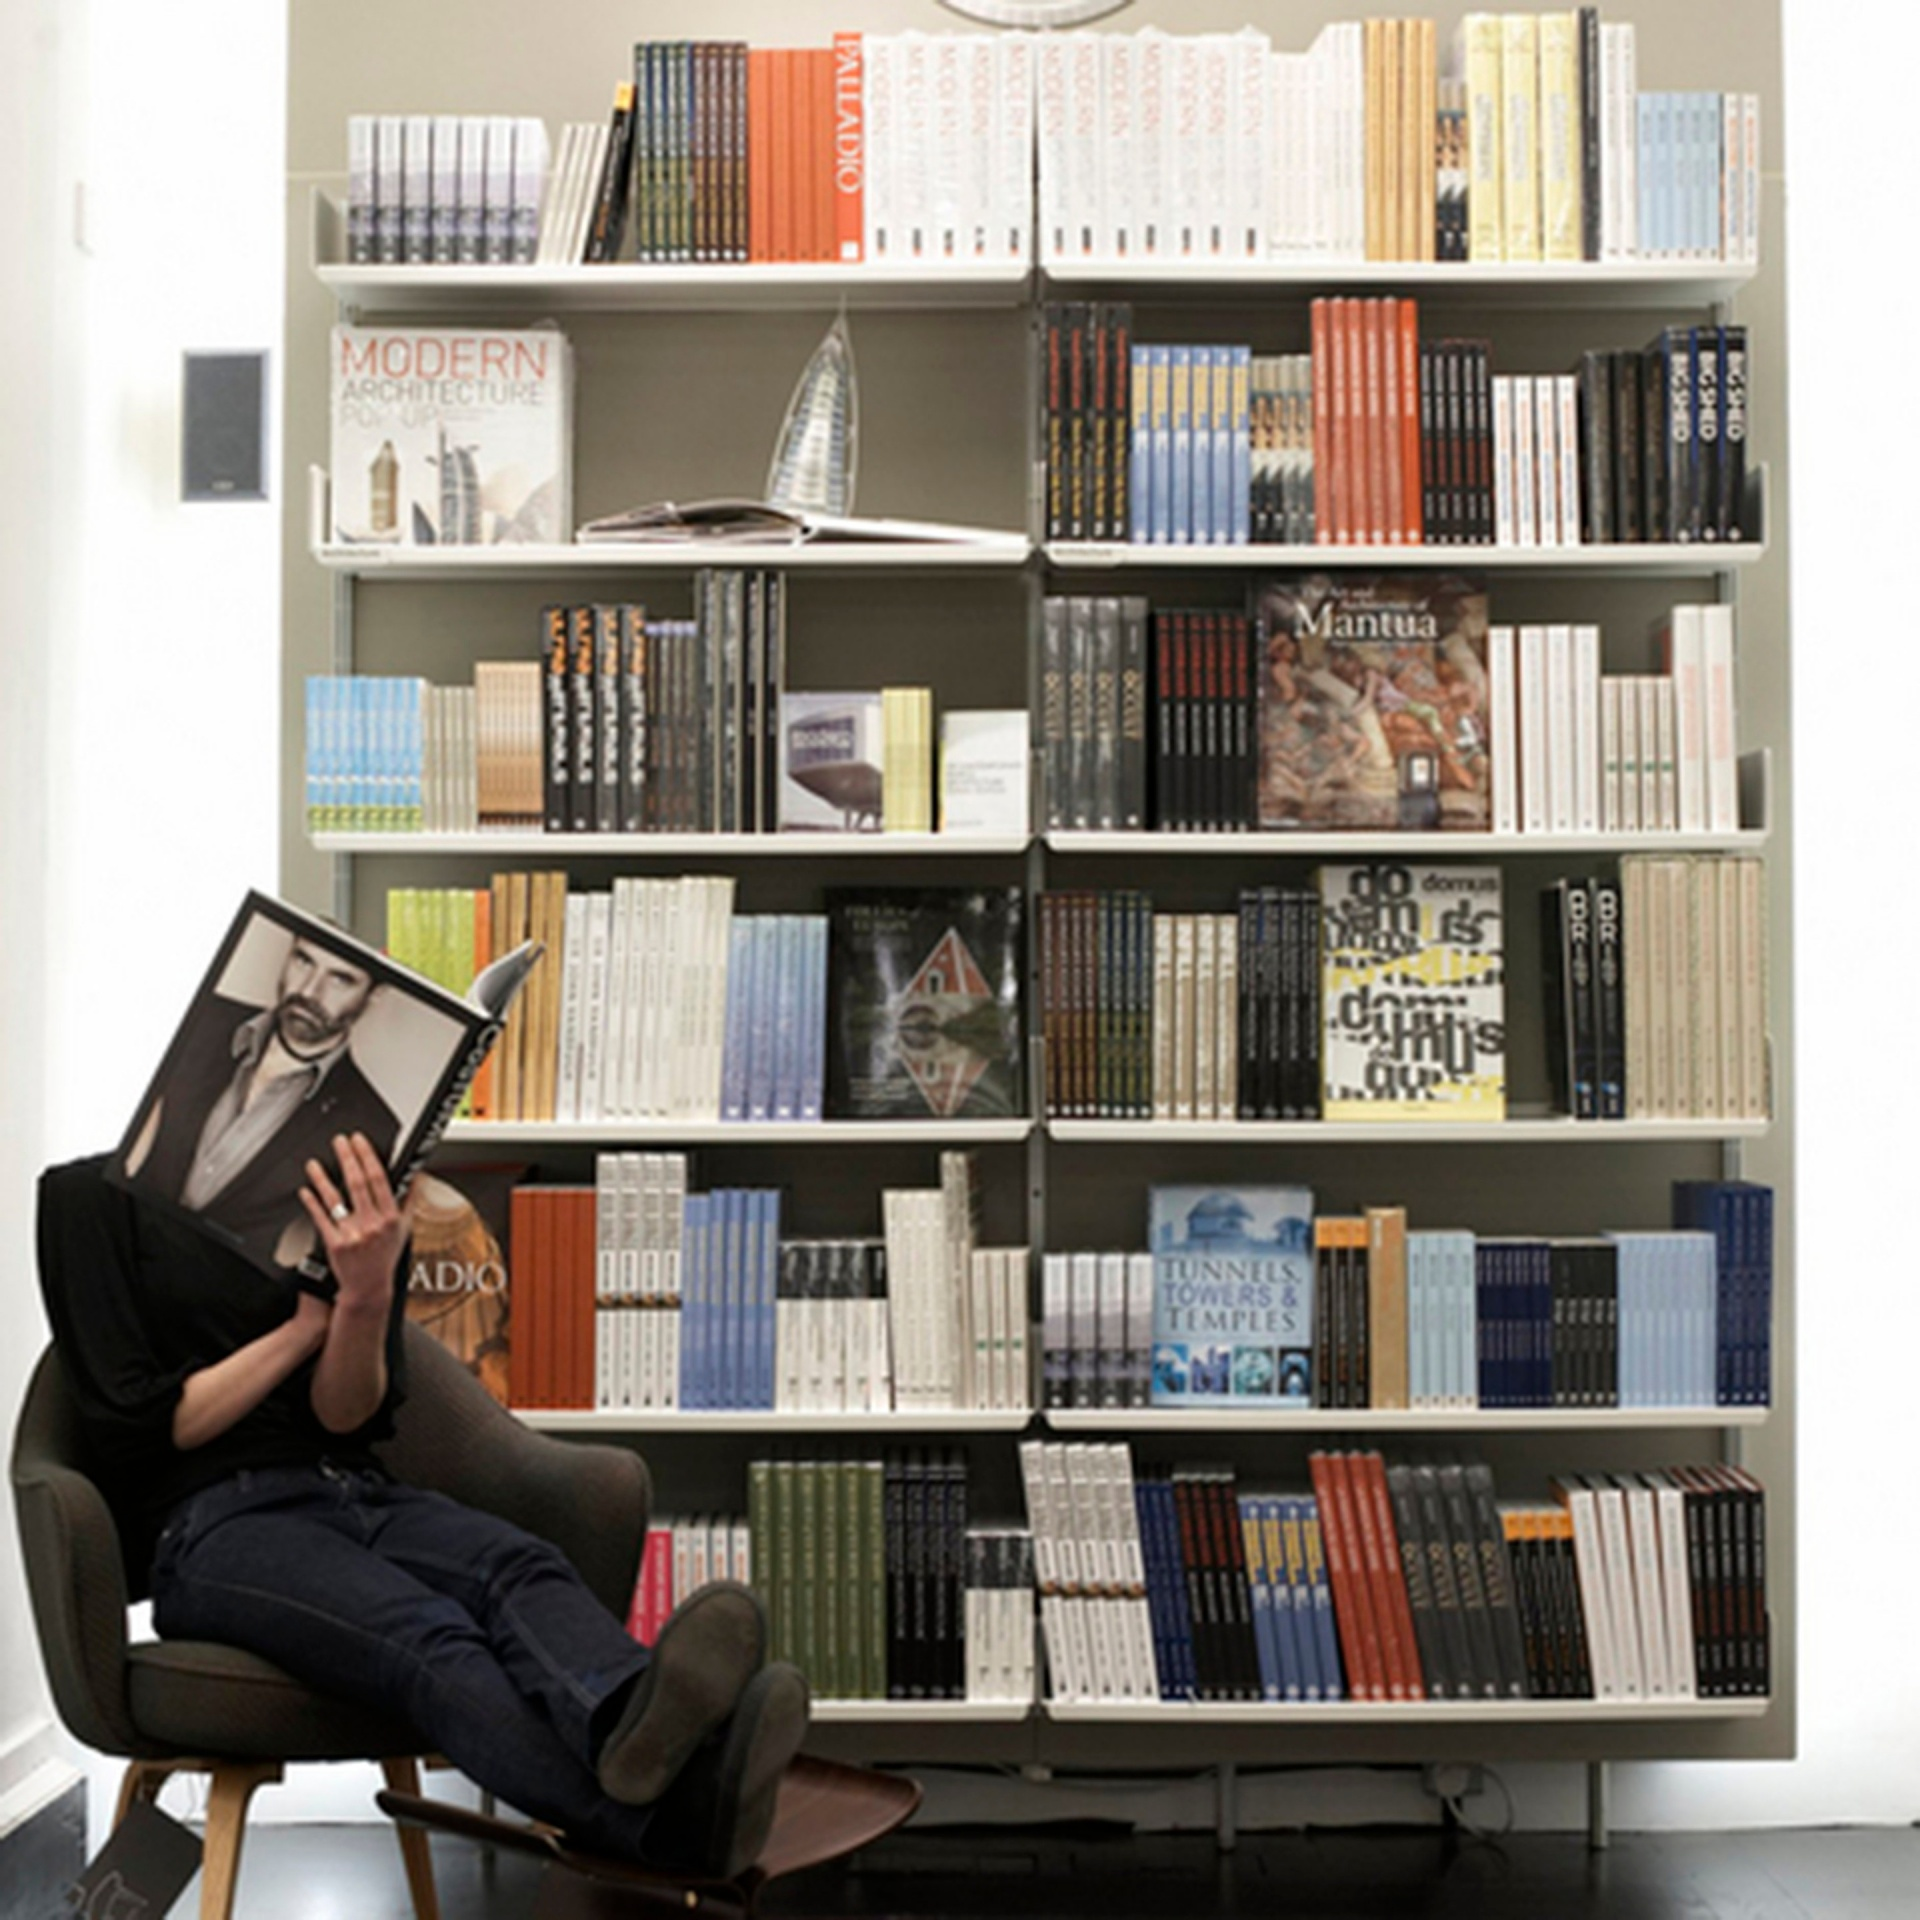 London's Victoria & Albert Museum uses our bookshelves throughout their bookshopImages courtesy of the V&A/Holly Jolliffe